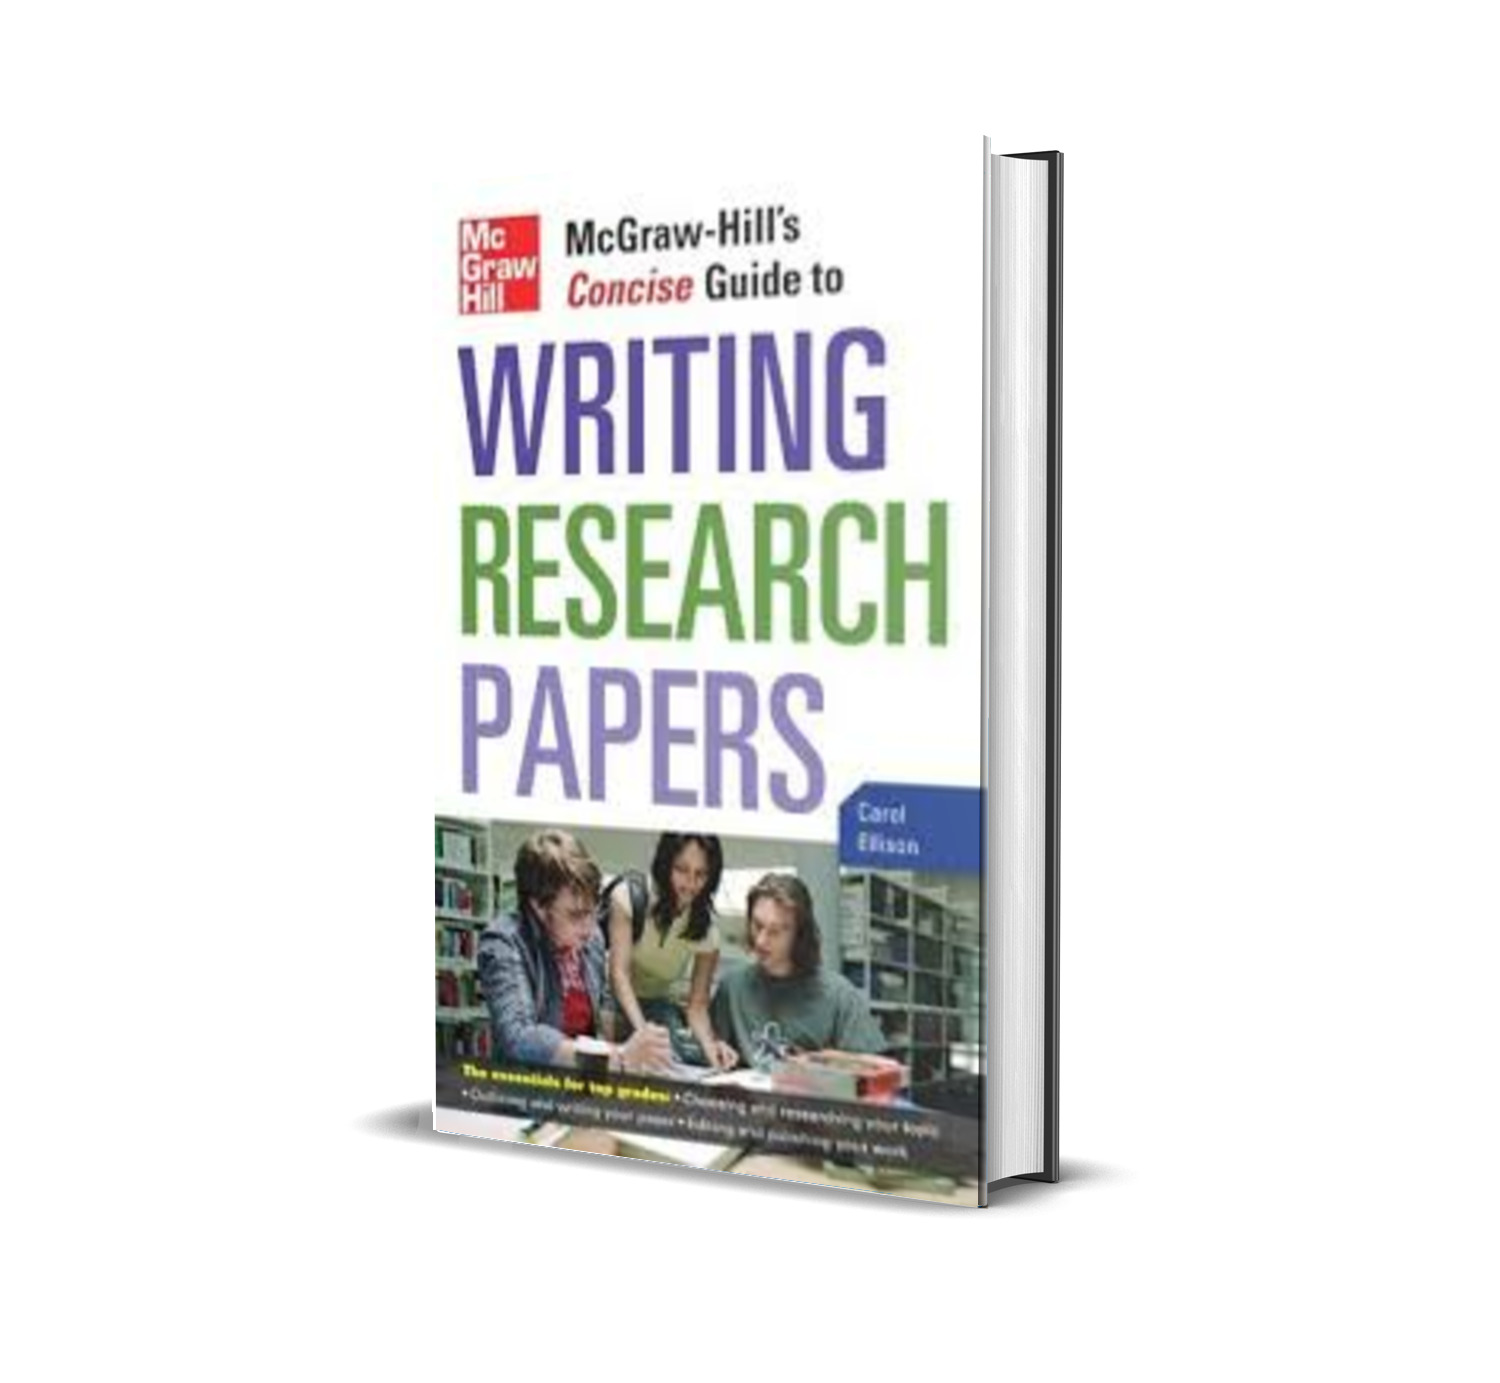 Concise Guide to Writing Research Papers - Carol Ellison